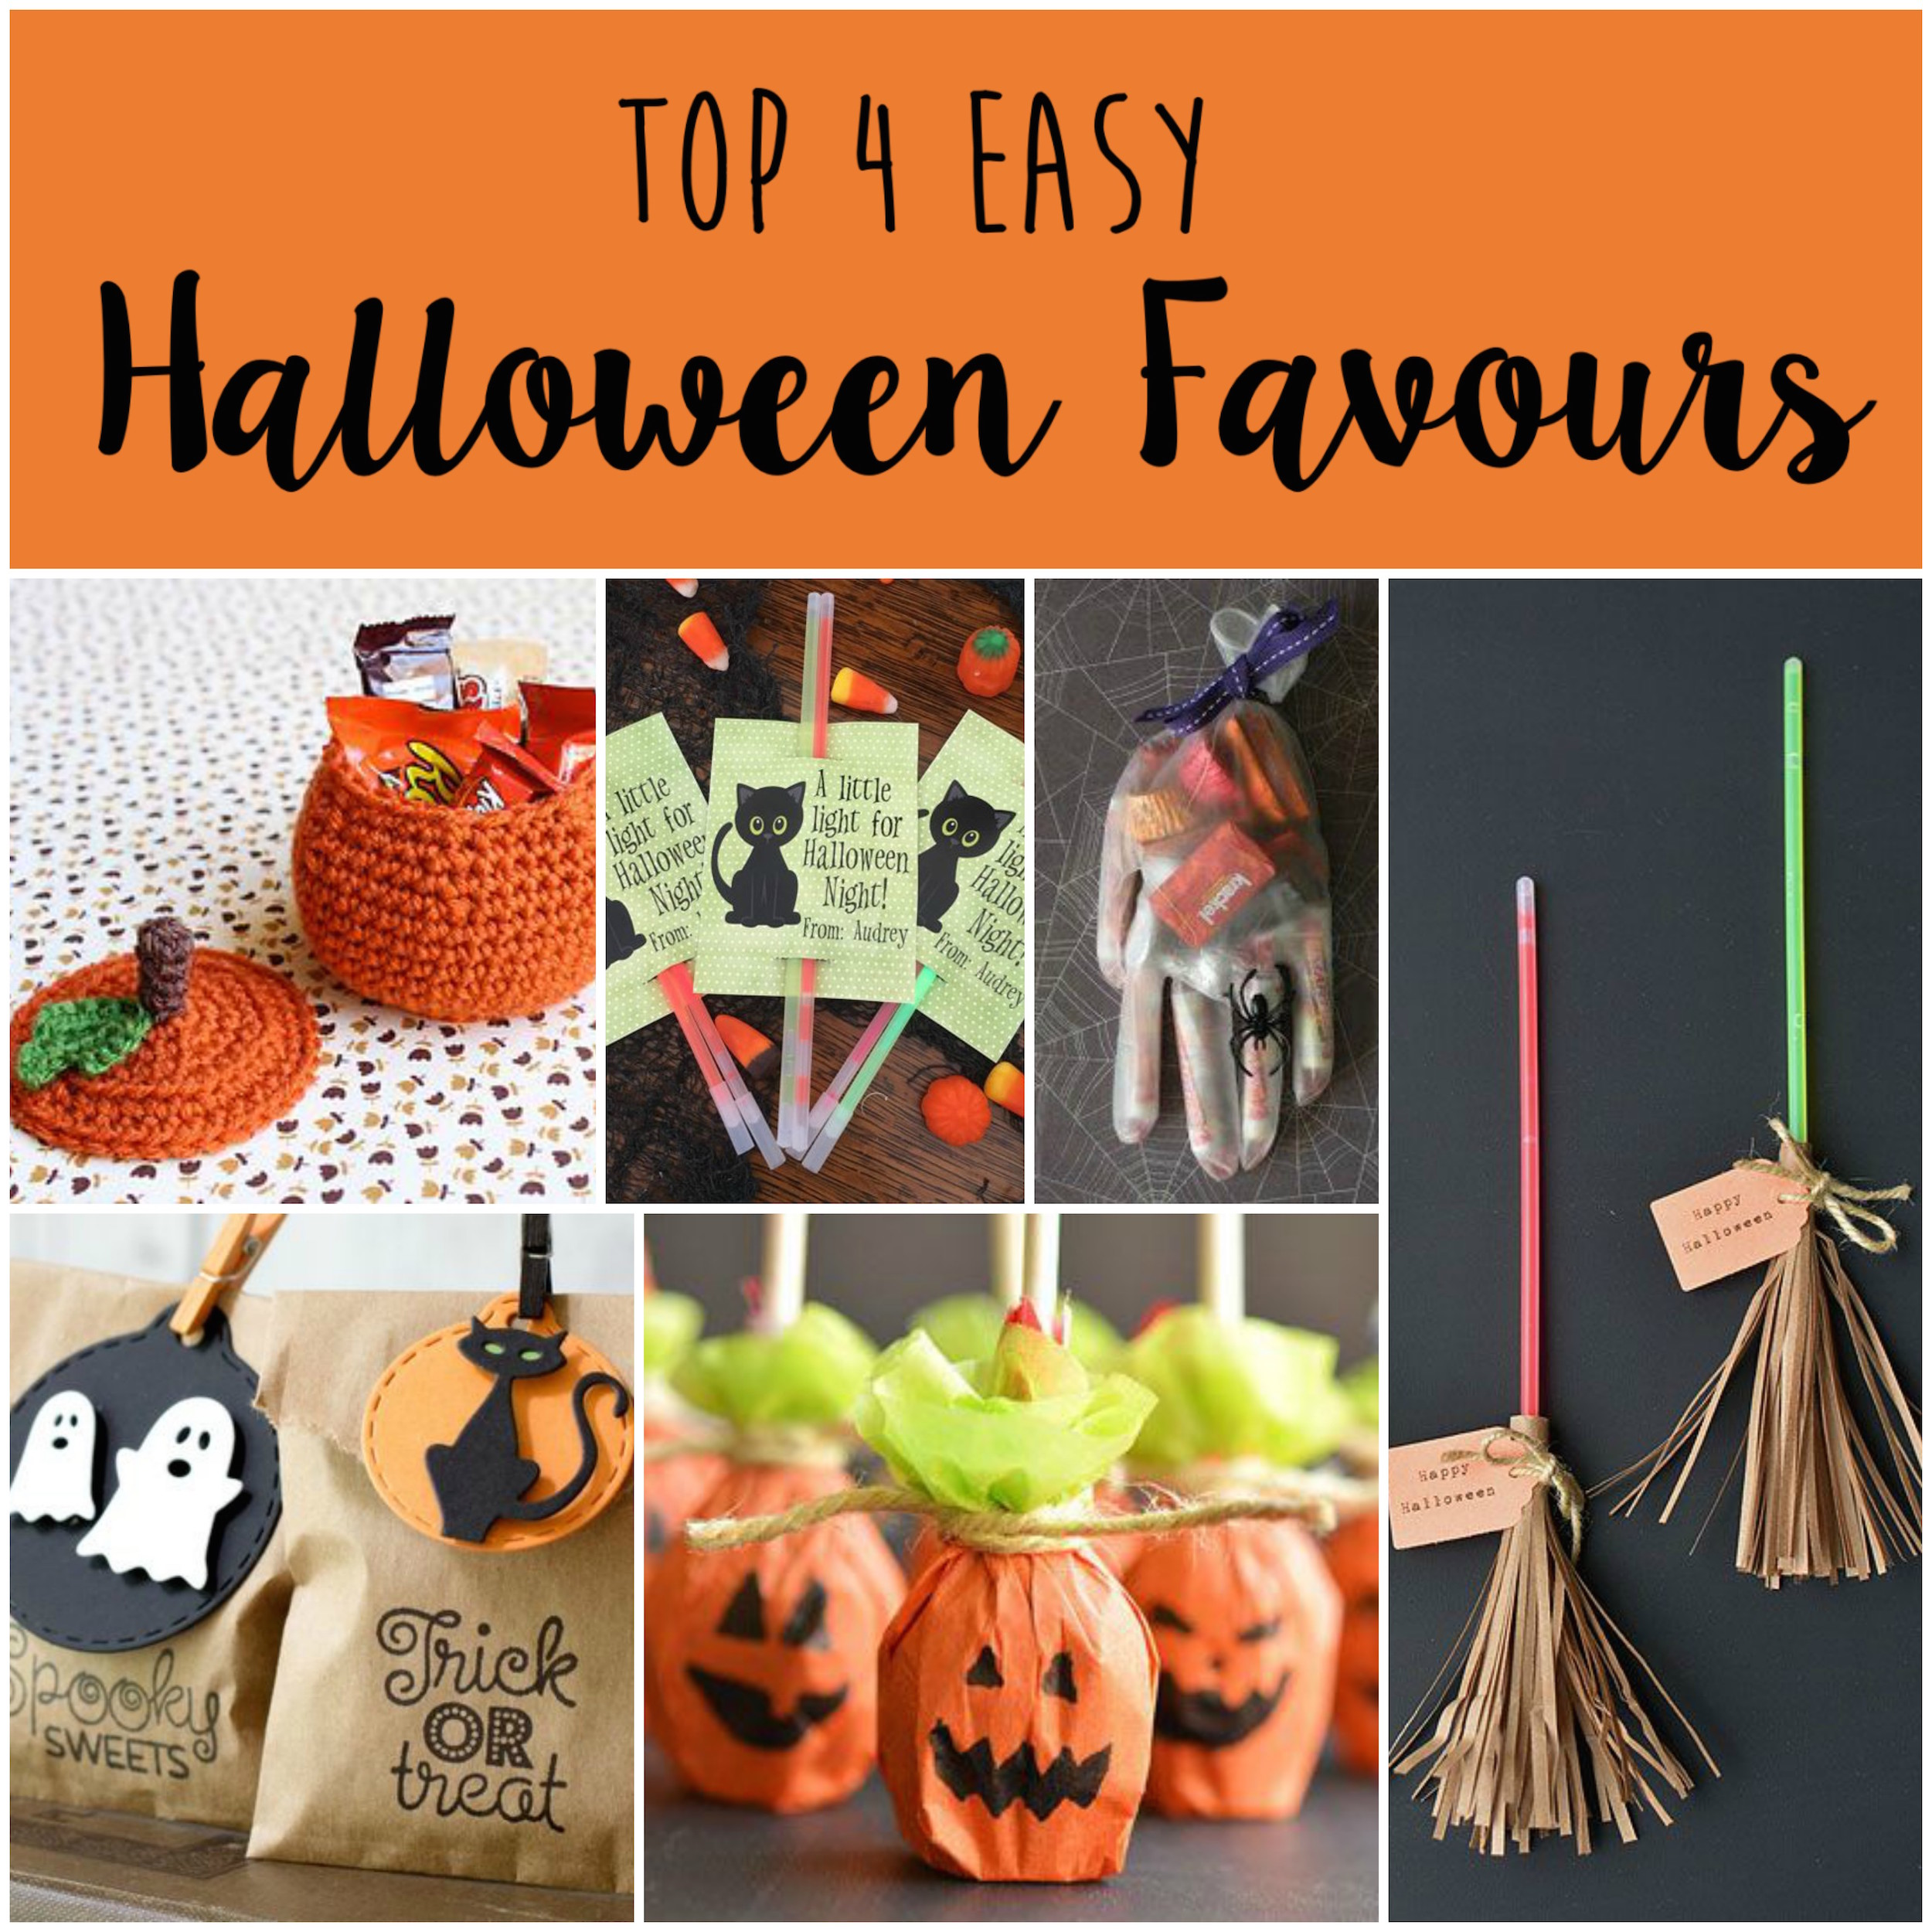 Happy Halloween Favours!